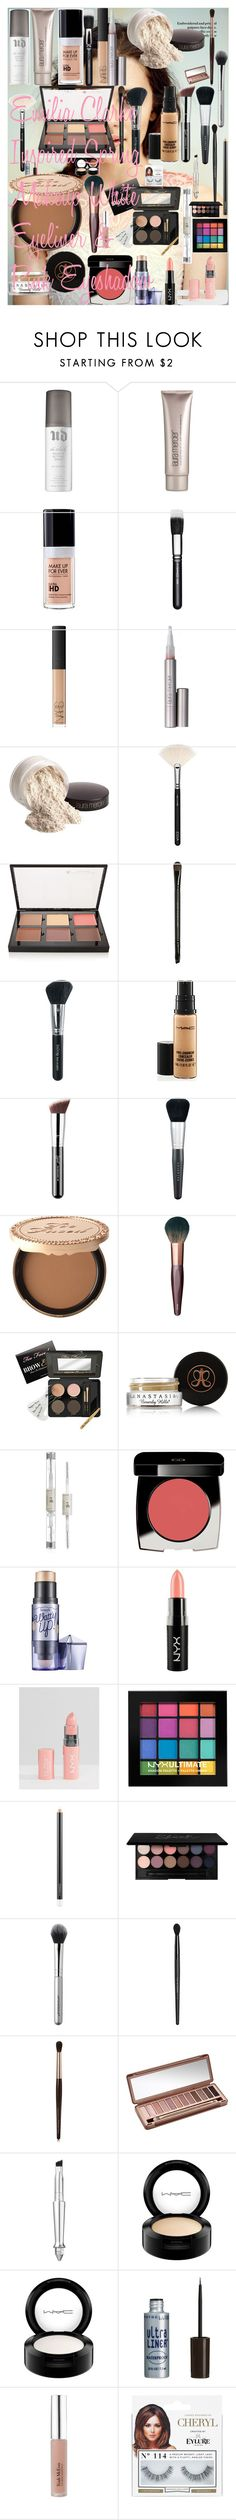 """""""Emilia Clarke Inspired Spring Makeup ♡ White Eyeliner & Pink Eyeshadow"""" by oroartye-1 on Polyvore featuring beauty, Urban Decay, Laura Mercier, MAKE UP FOR EVER, MAC Cosmetics, NARS Cosmetics, ZOEVA, Anastasia Beverly Hills, Bare Escentuals and Isadora"""